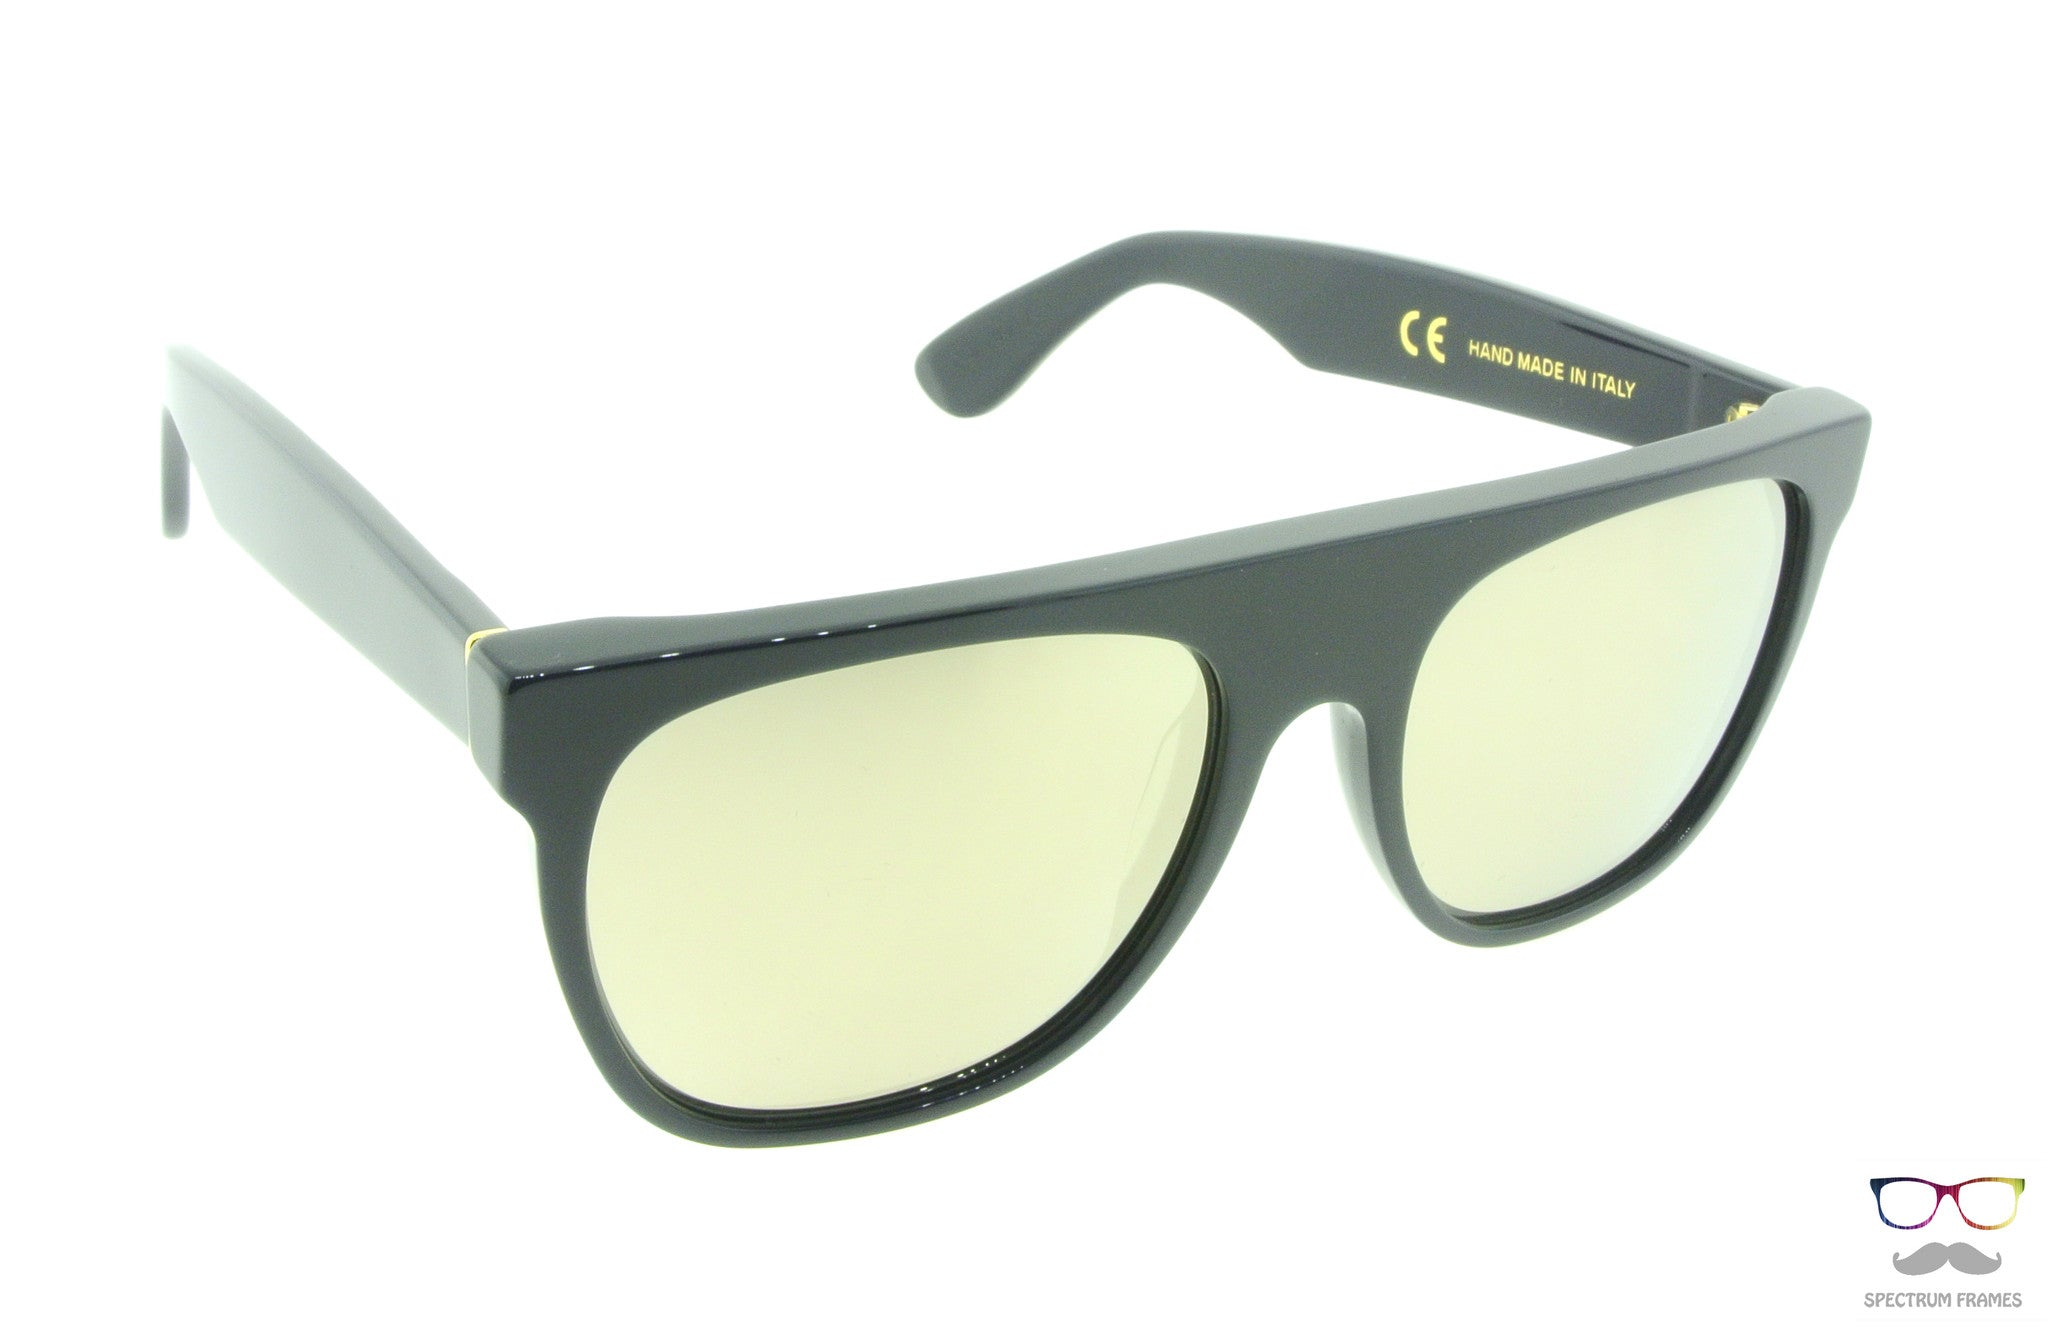 45416f6b82d ... RETROSUPERFUTURE Super Sunglasses Flat Top Specular A5J   Gold Mirror  Zeiss Lenses ...